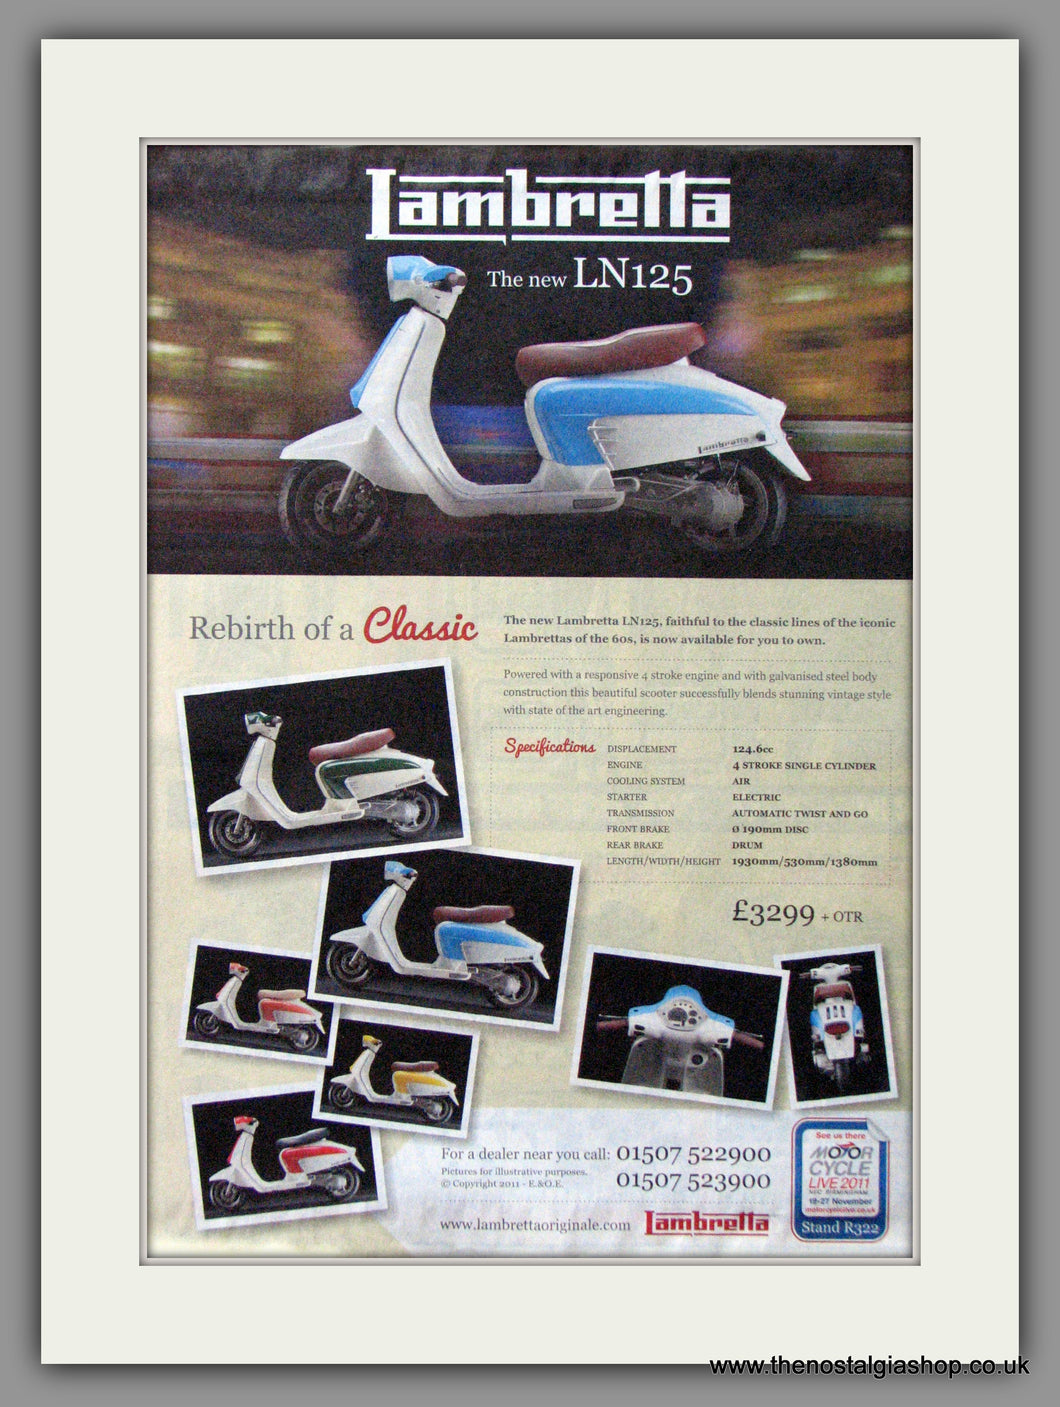 Lambretta LN125, Rebirth Of A Classic. Original advert 2011 (ref AD54028)